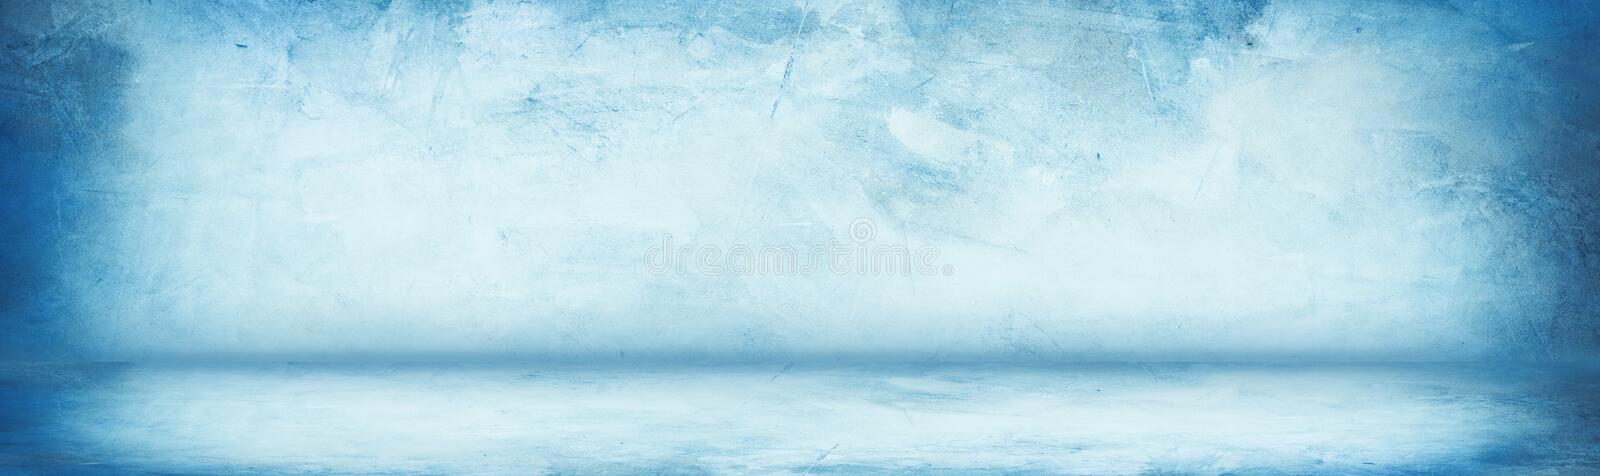 Horizontal blue grunge texture cement or concrete wall banner, blank studio background.  stock illustration